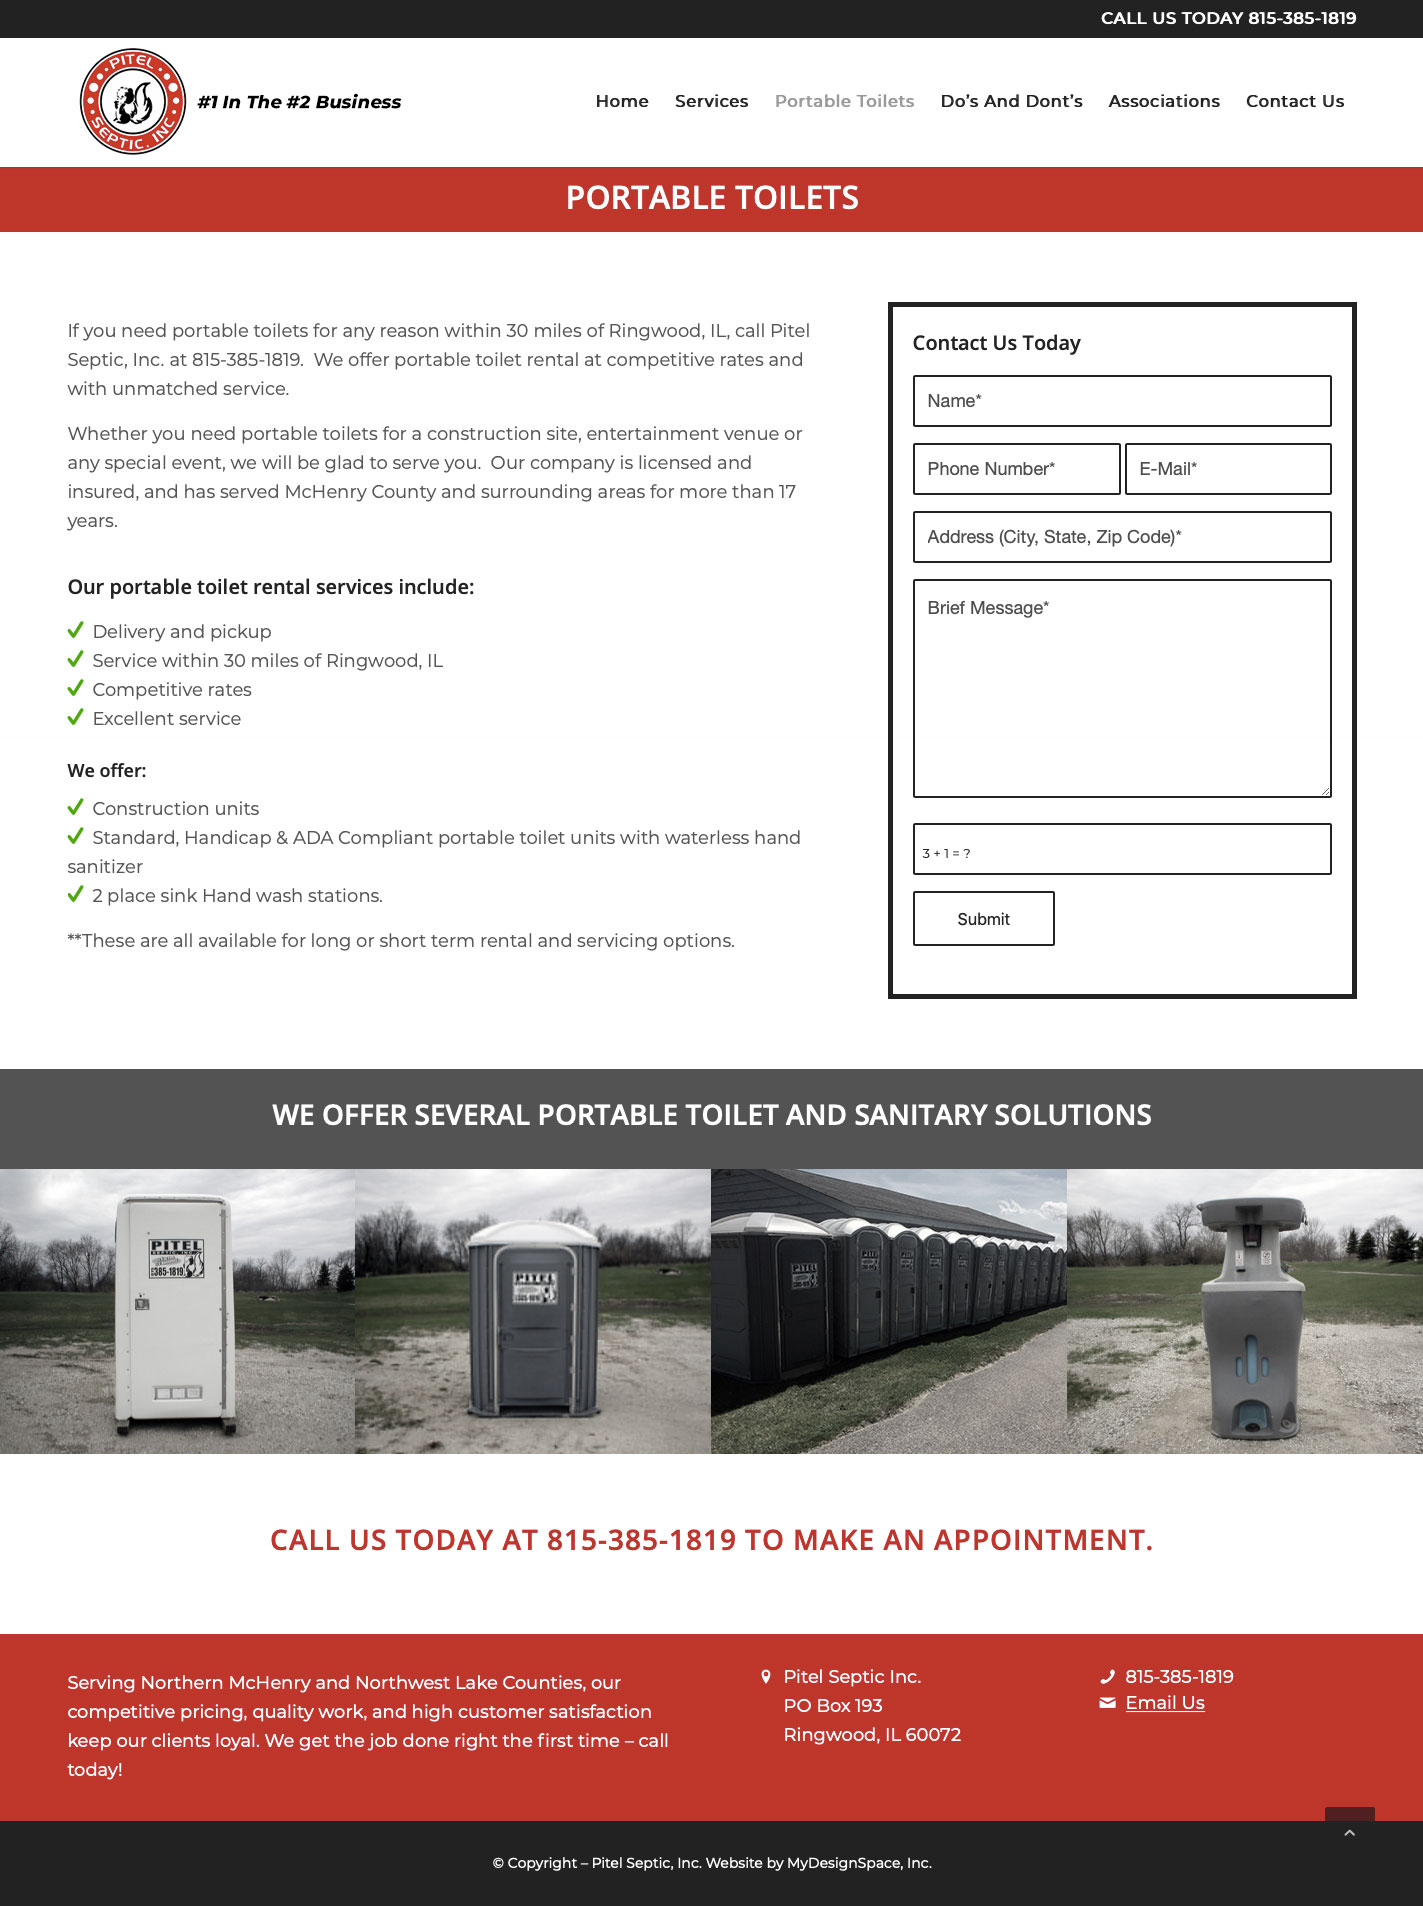 Pitel Septic Portable Toilets Page